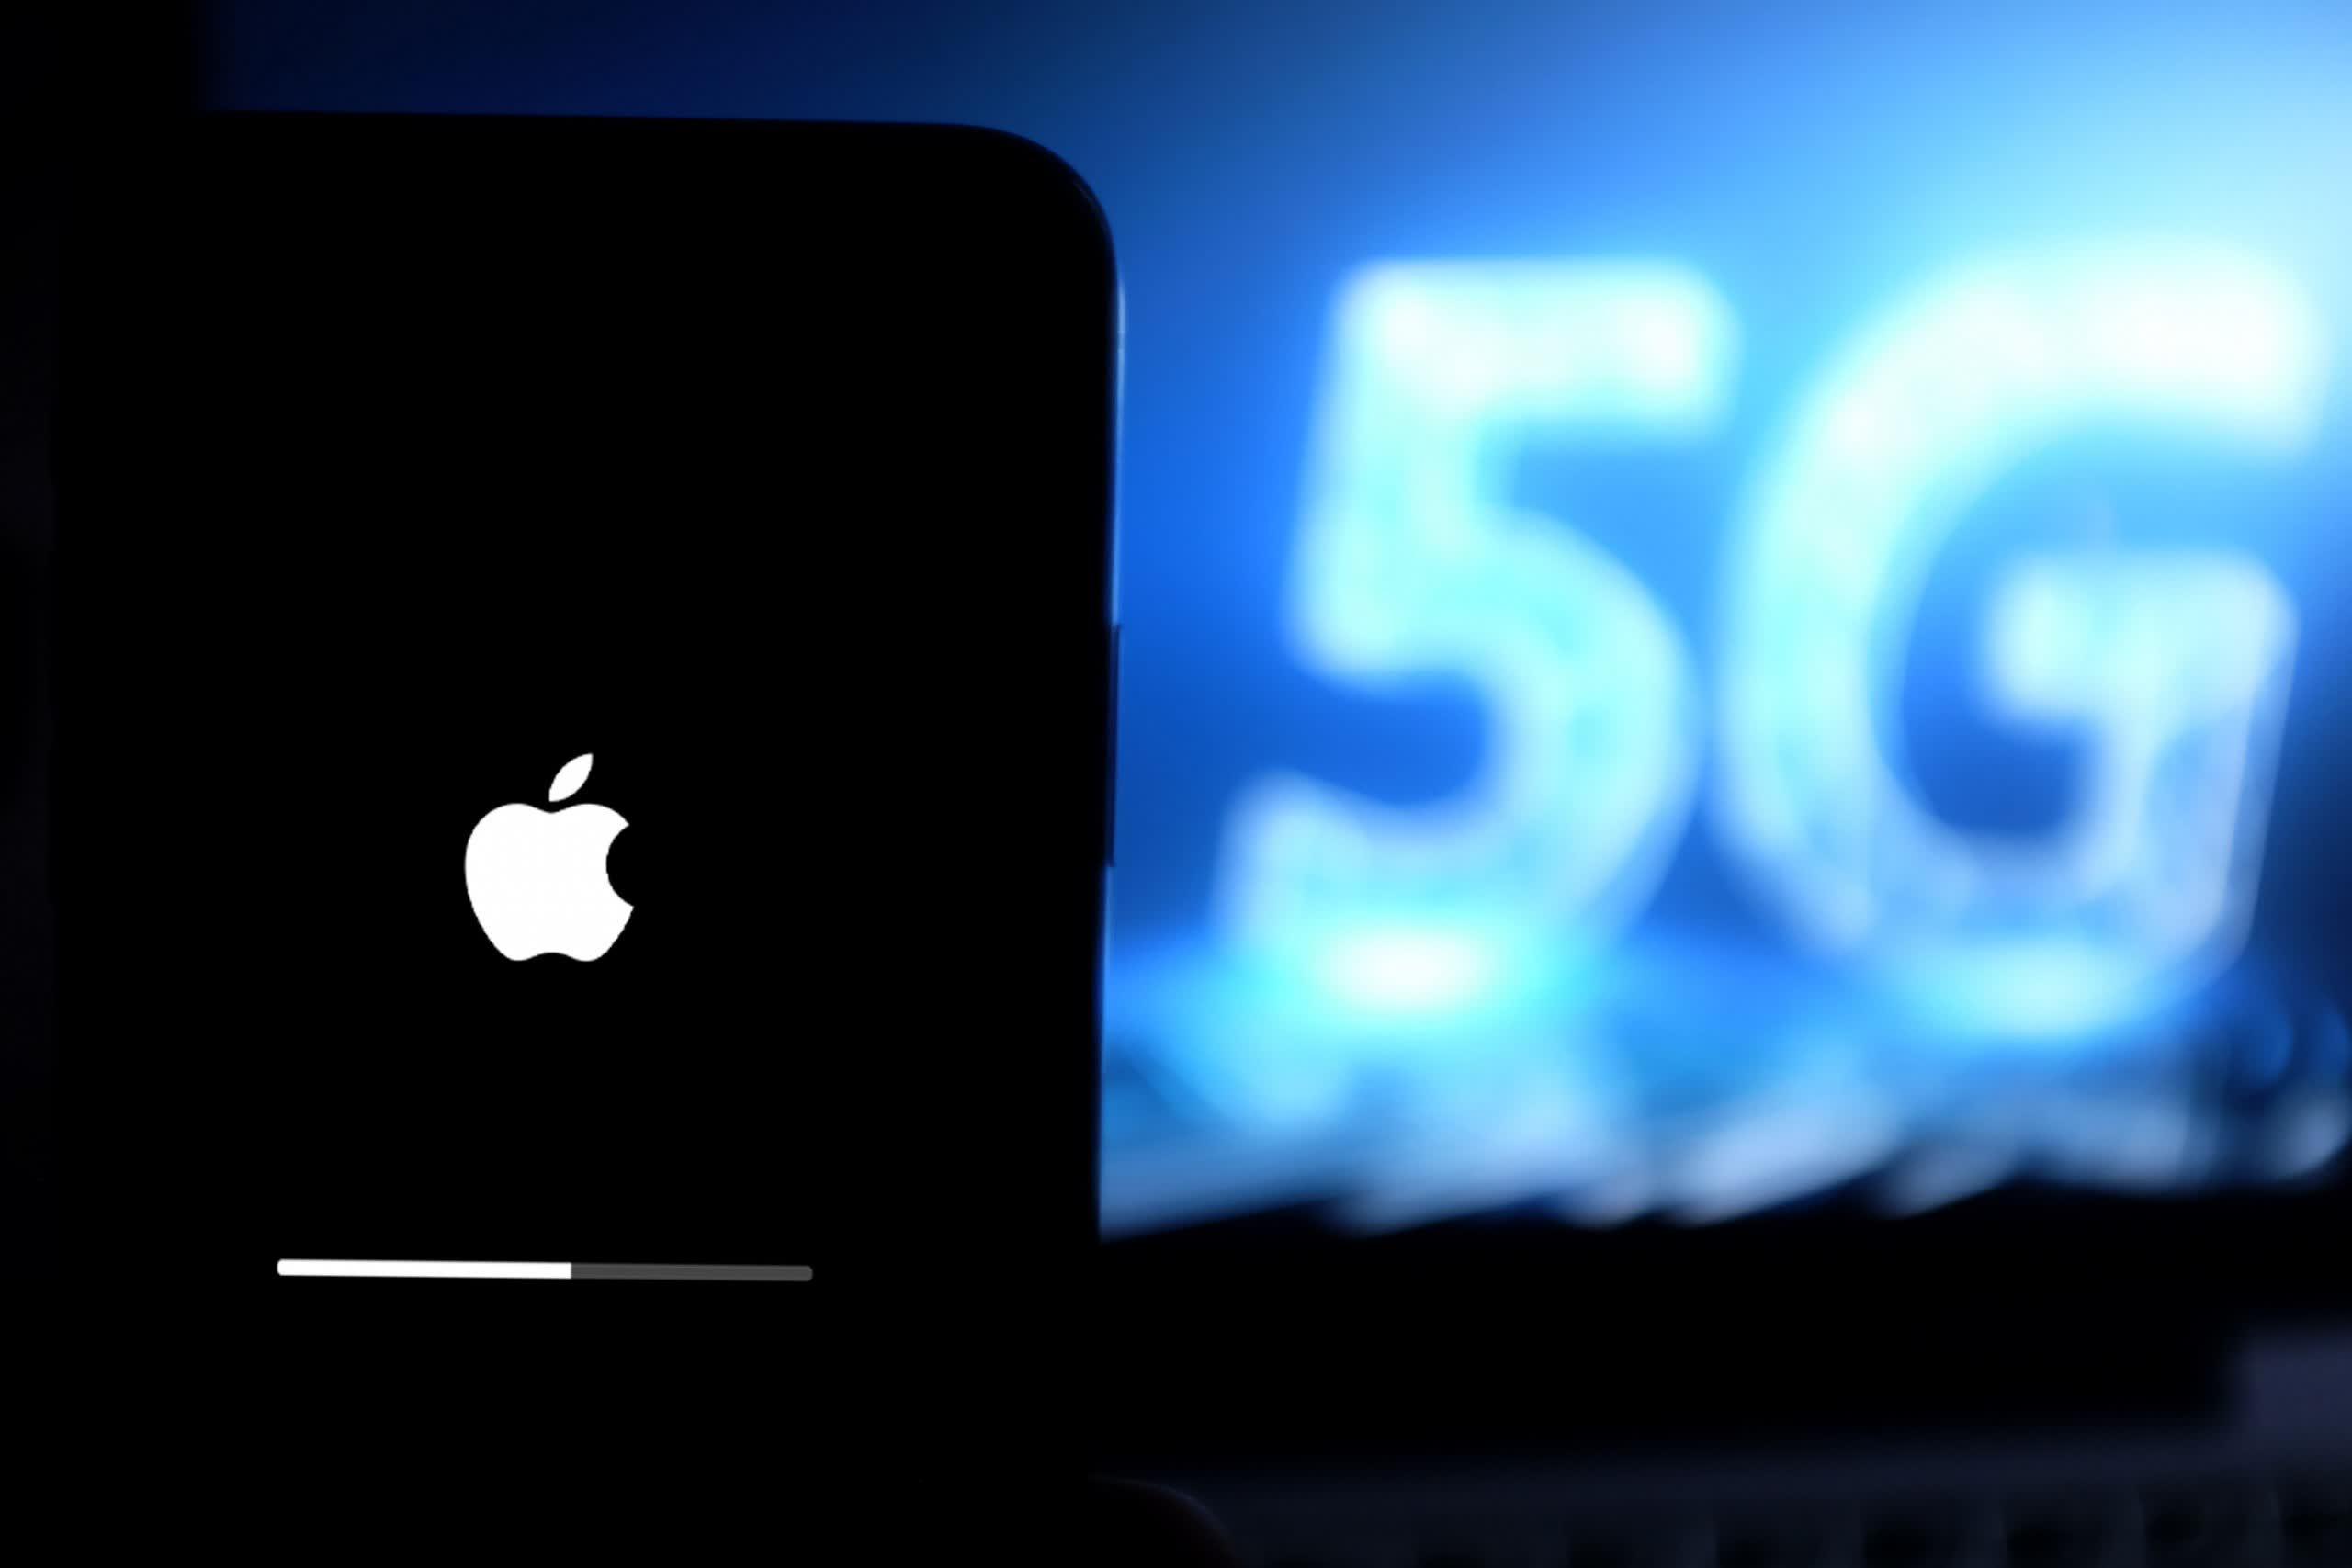 Apple's in-house custom 5G modems might arrive in 2023 iPhones